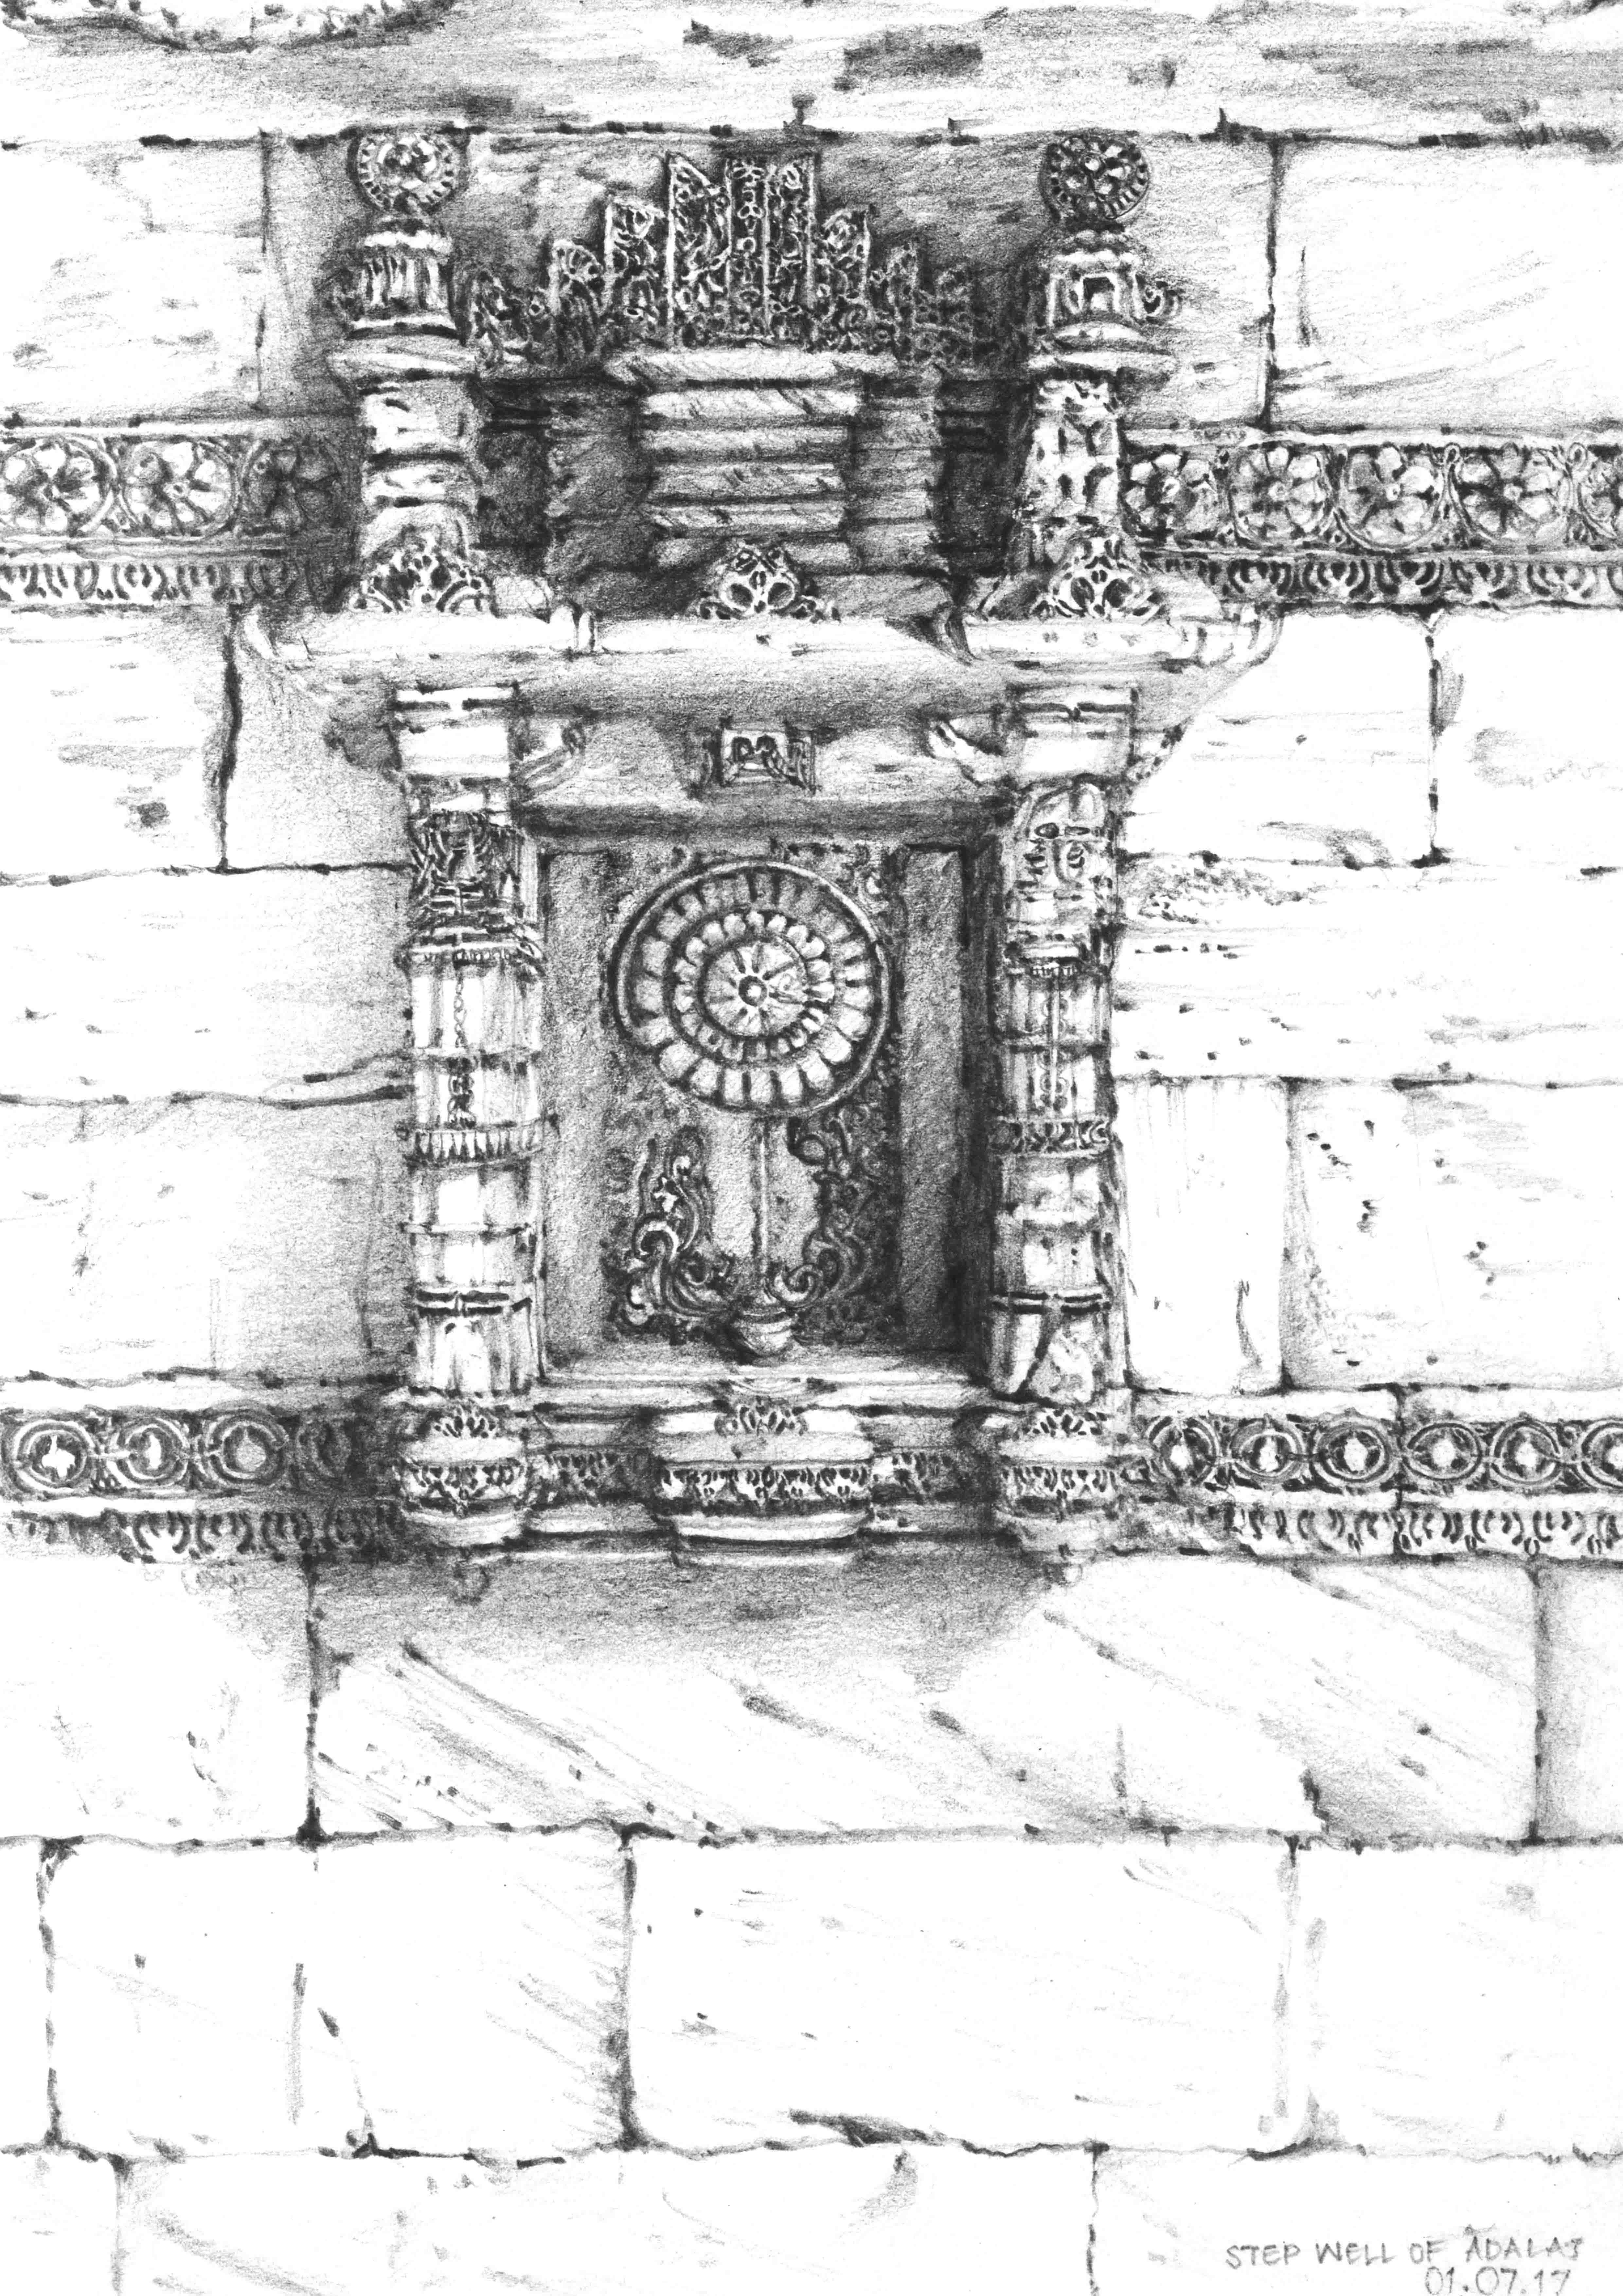 Step Well of Adalaj Wall 16733